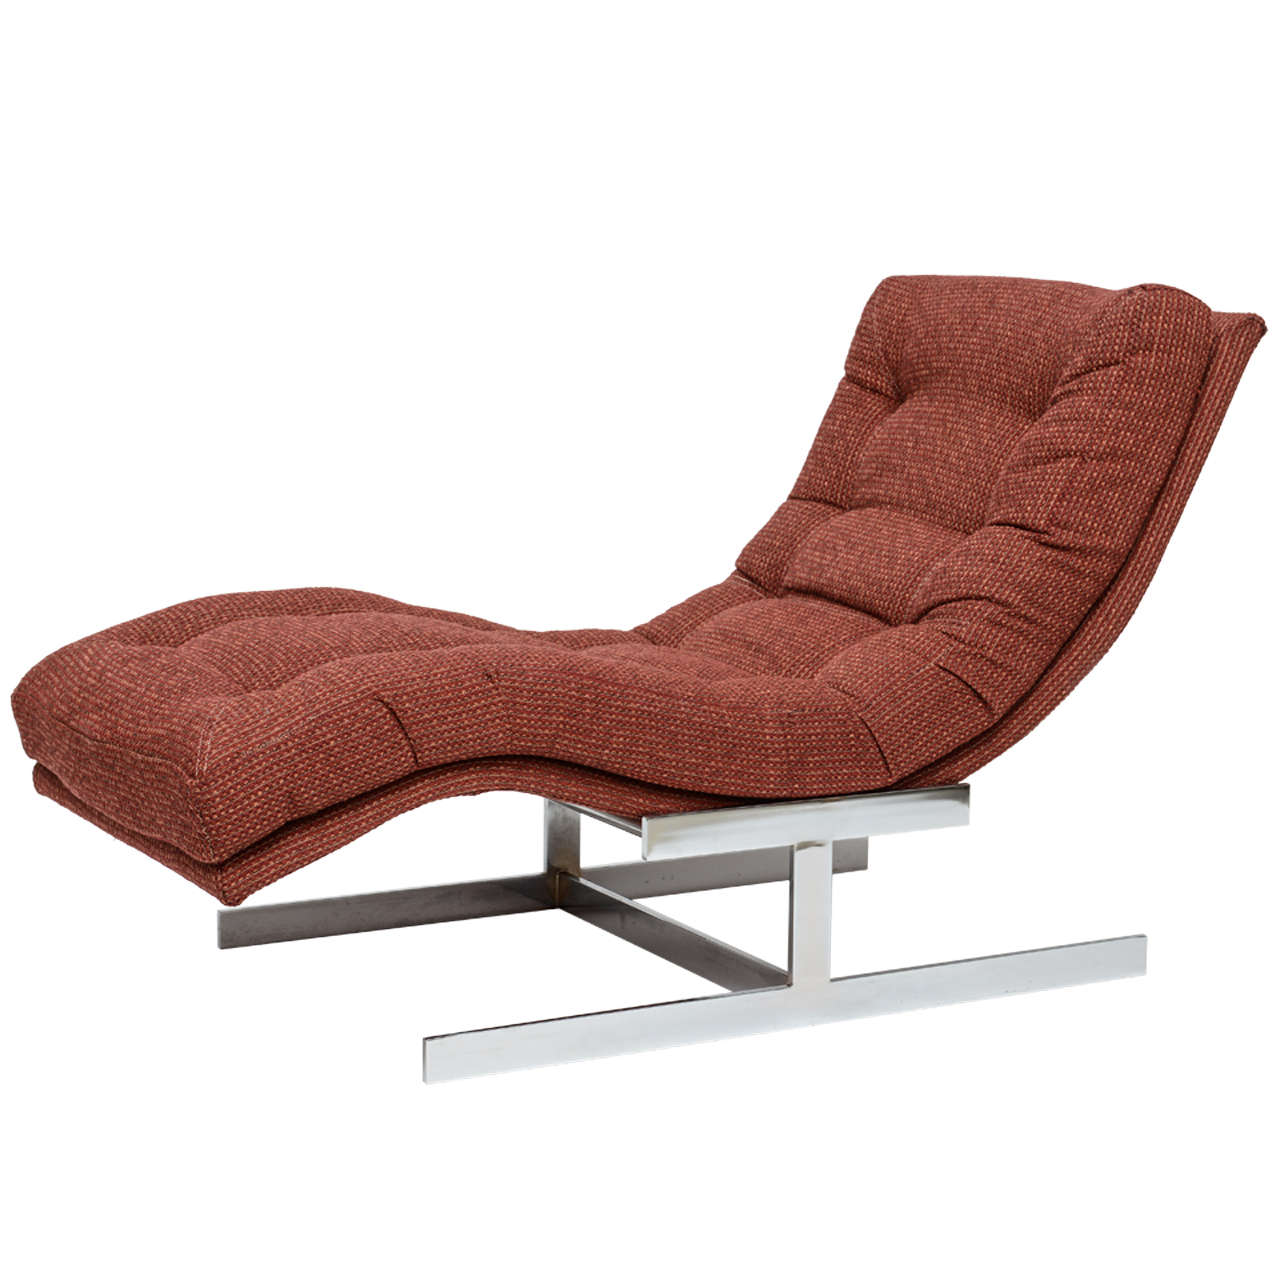 Milo baughman chaise longue at 1stdibs for Chaise longue furniture